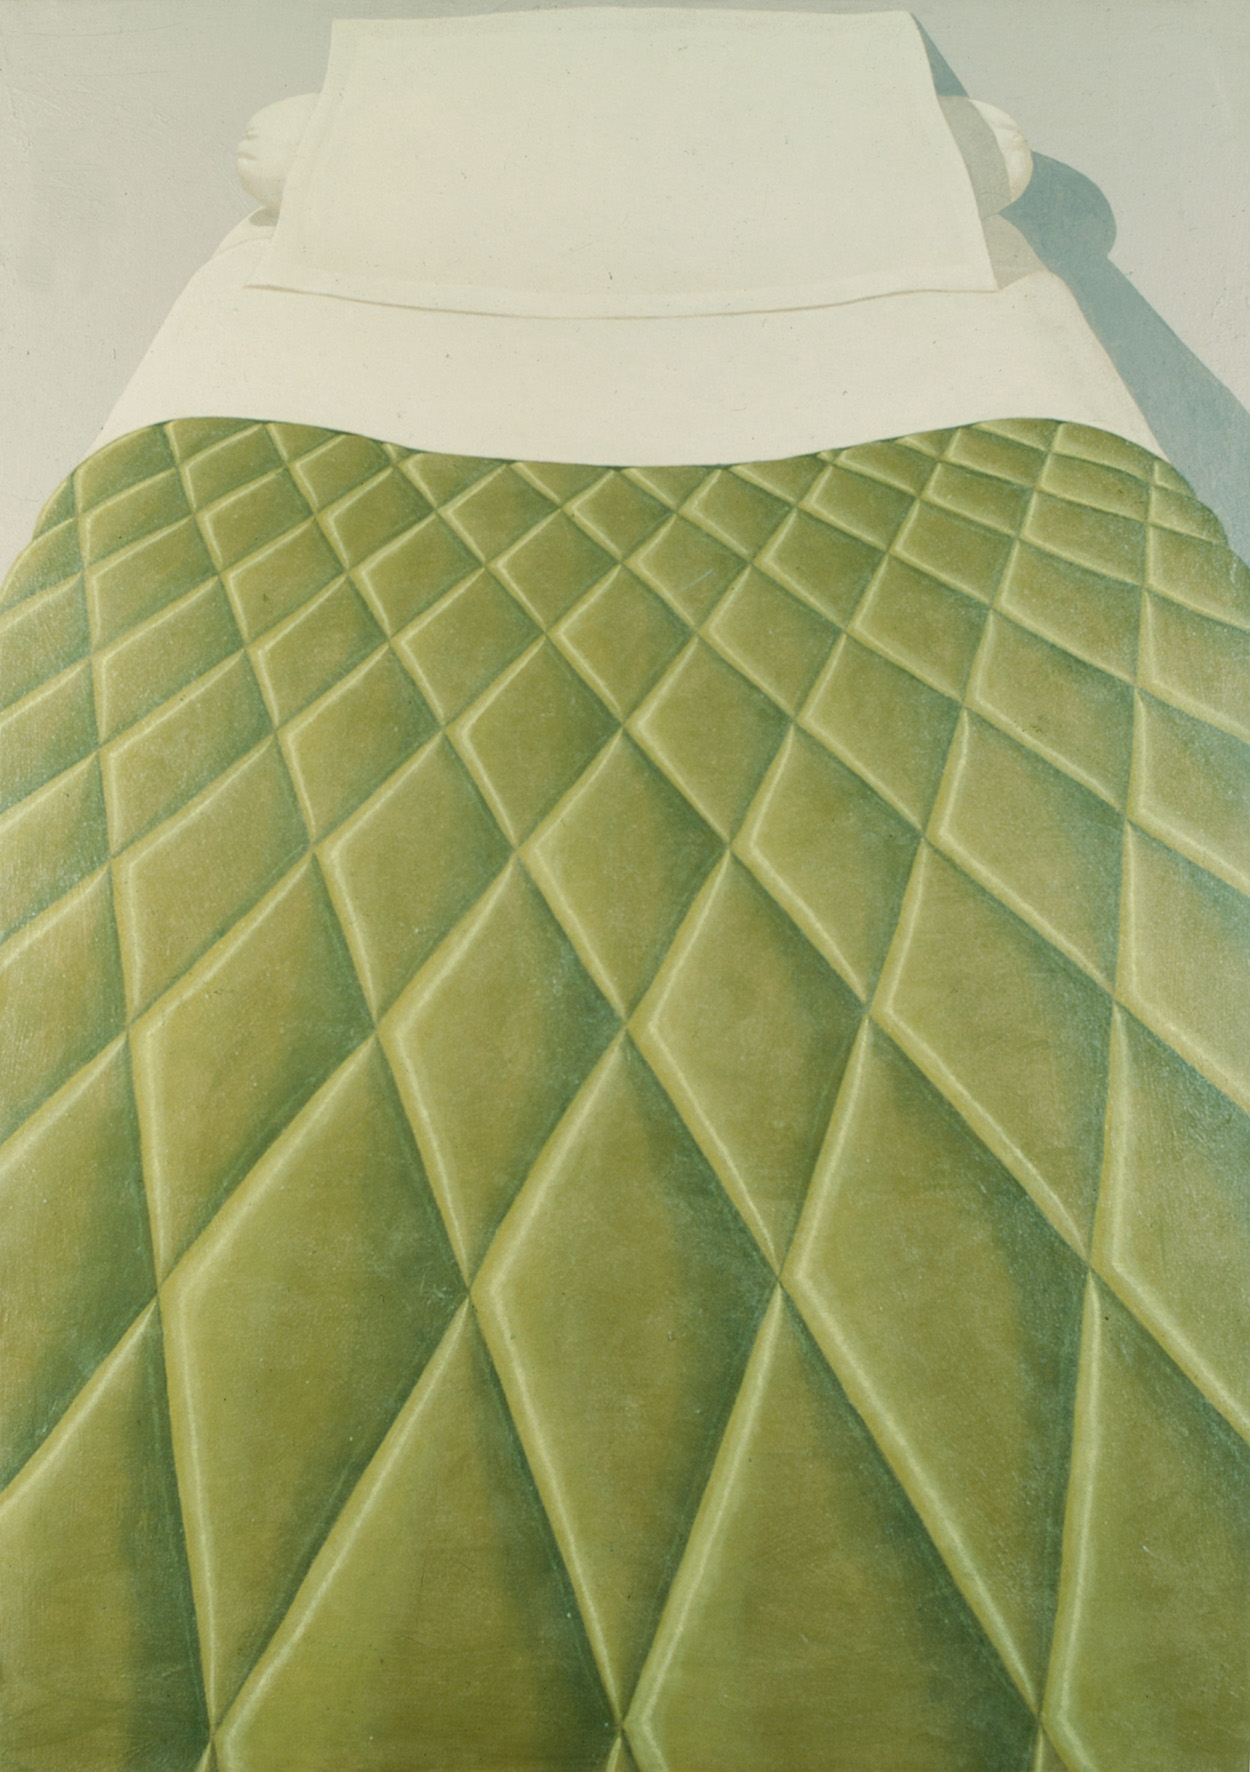 Domenico gnoli green bed cover  1969